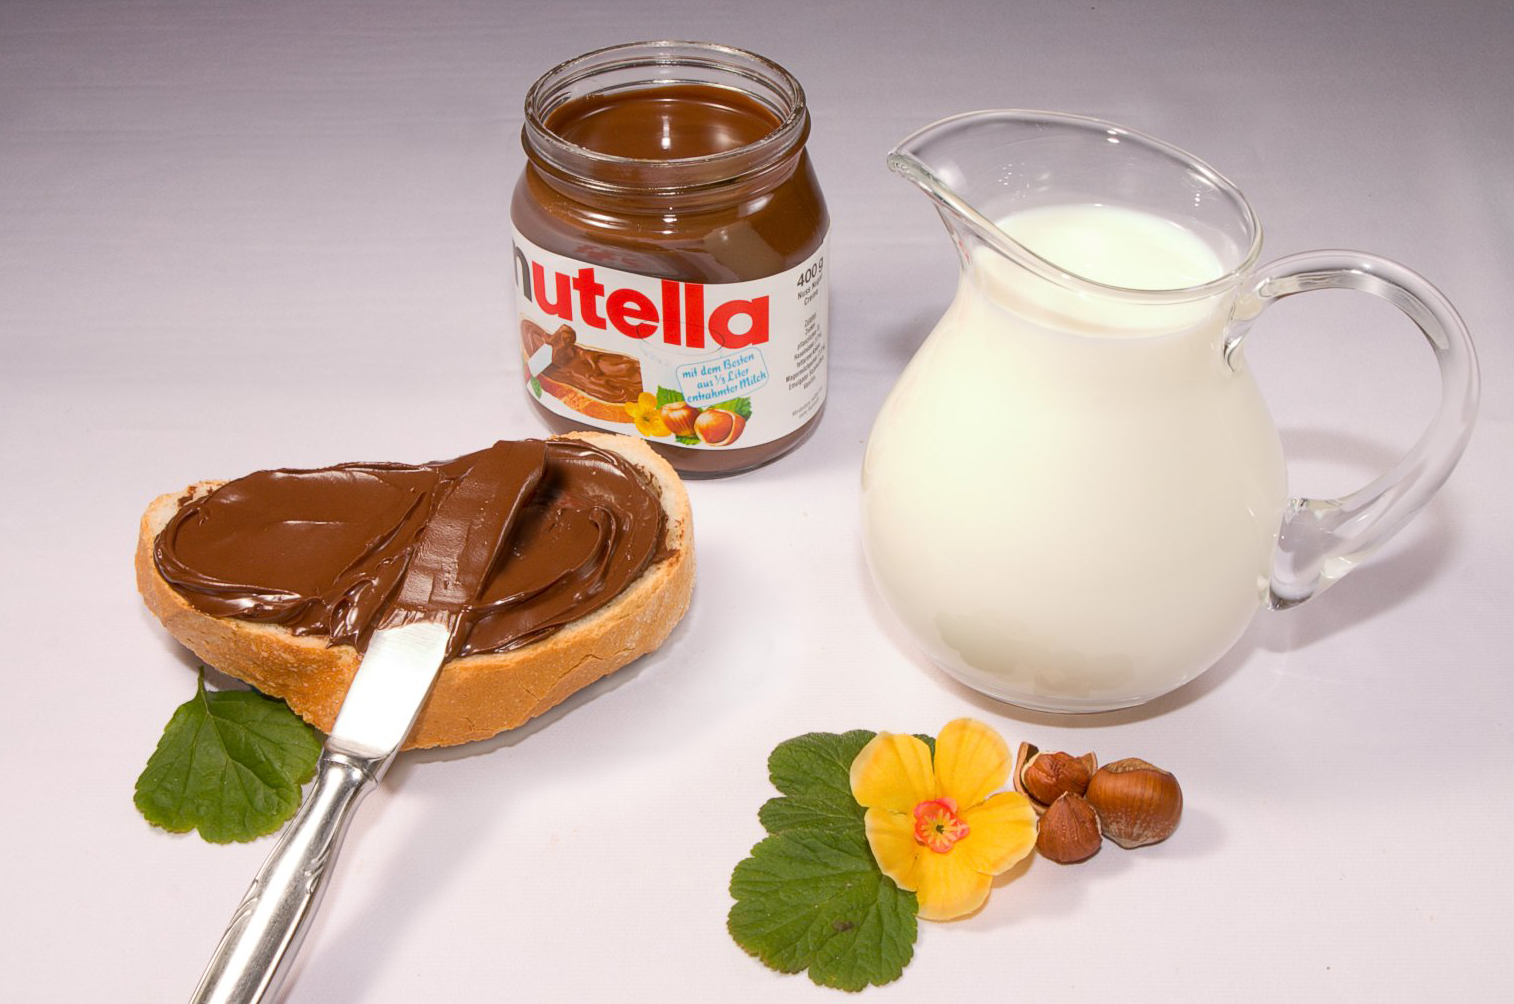 You Can Now Get Paid To Eat Nutella In Italy Nutella 1